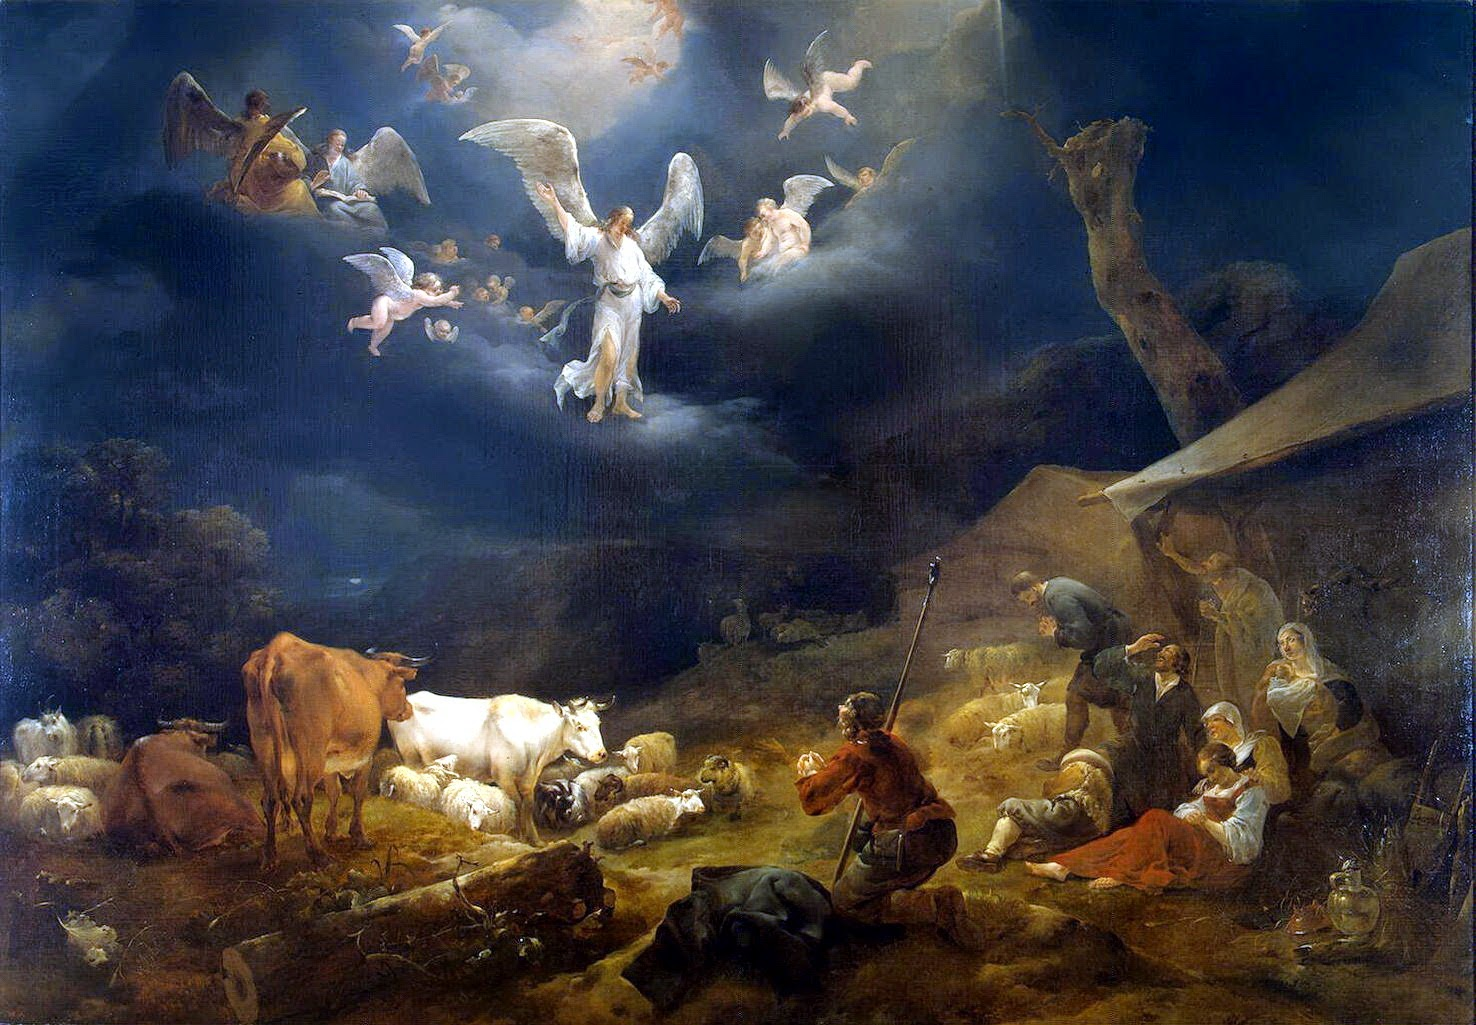 angels sing to shepherds - photo #15